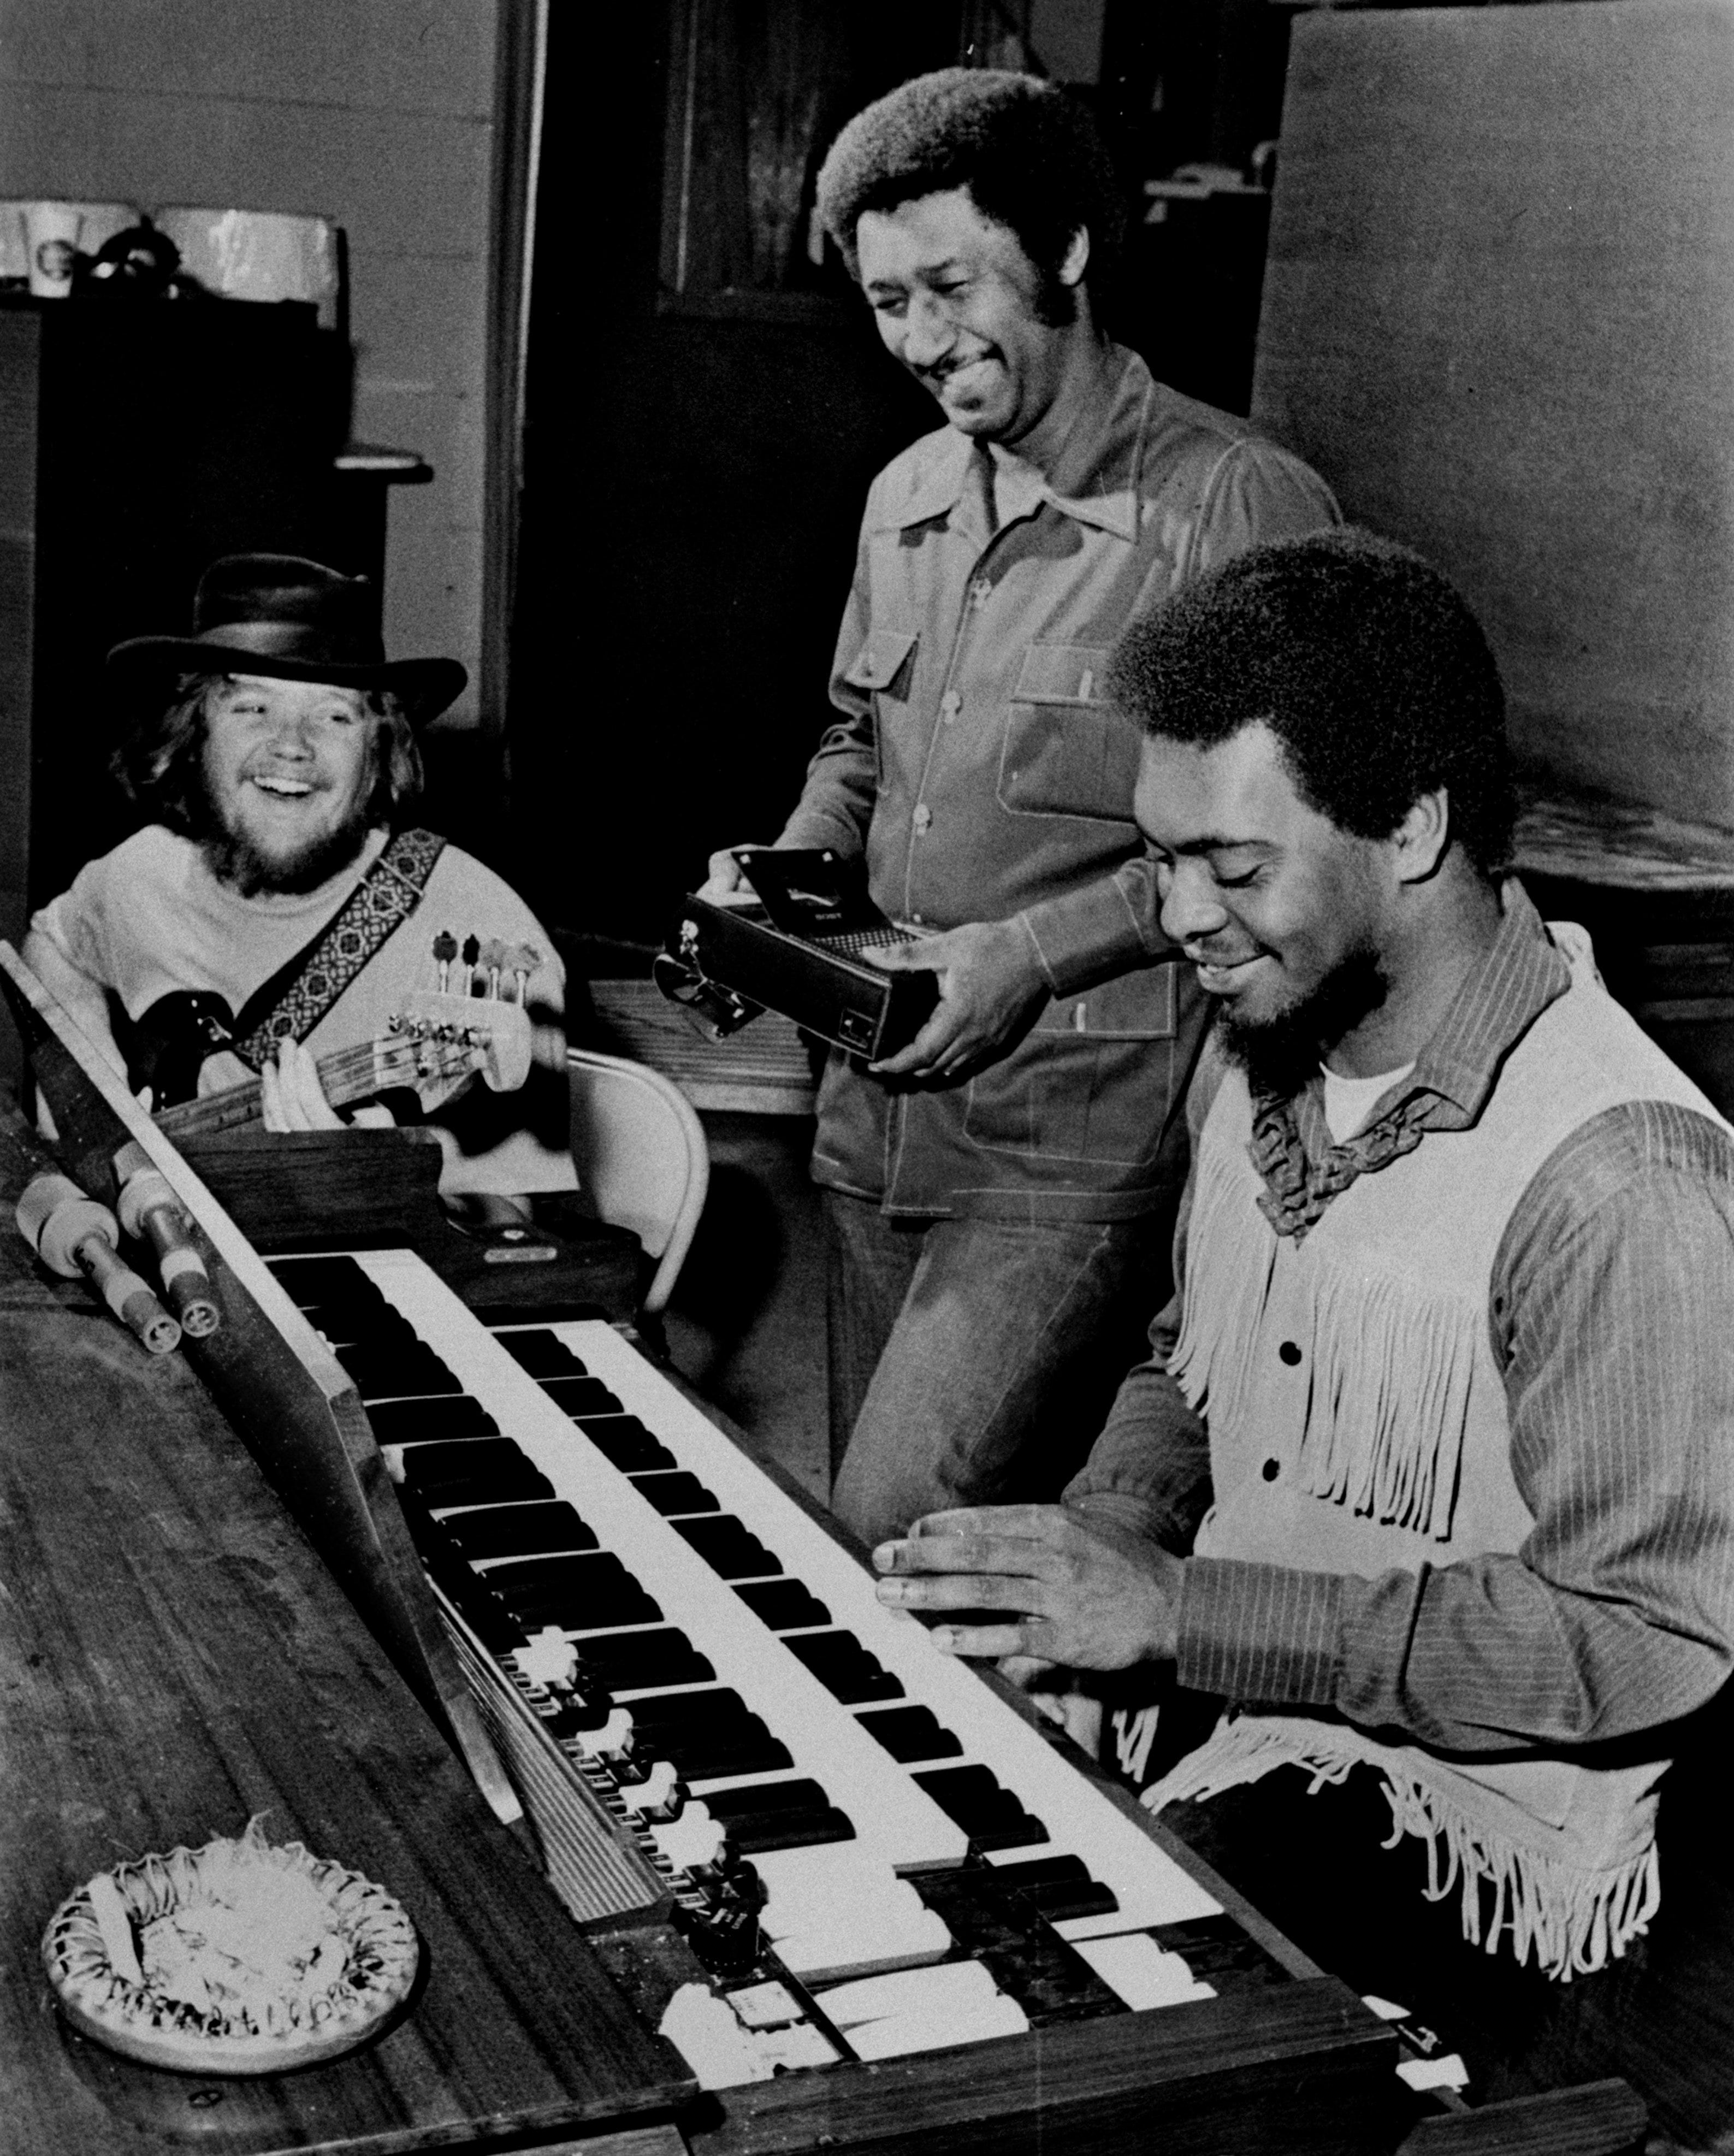 Three members of Booker T. and the MGs (left to right) Duck Dunn, Al Jackson and Booker T. Jones at STAX in a photograph dated Jan. 21, 1970. Fourth member, Steve Cropper, was in New York, producing a group, the Dramatics, for Paramount, and was expected back in a day or two.